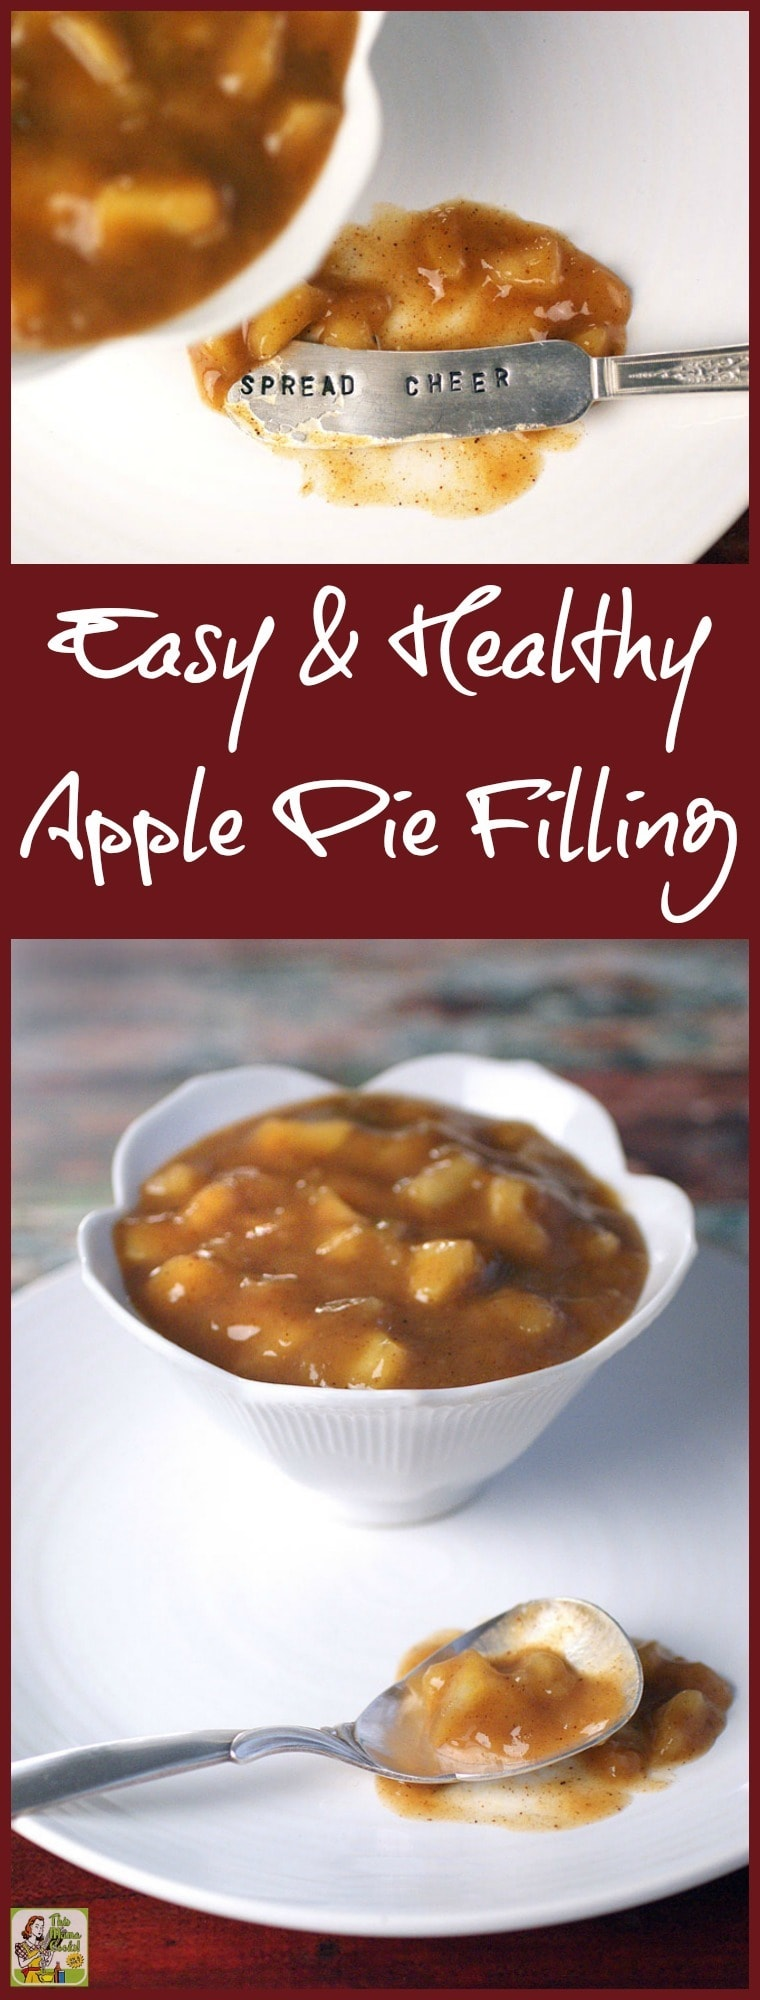 How to make an Easy & Healthy Apple Pie Filling for all your baking needs. The best apple pie filling recipe is easier to make than you think! Click to get this gluten free recipe. Double or triple a batch and freeze to use in all sorts of apple pie dessert and baking recipes.